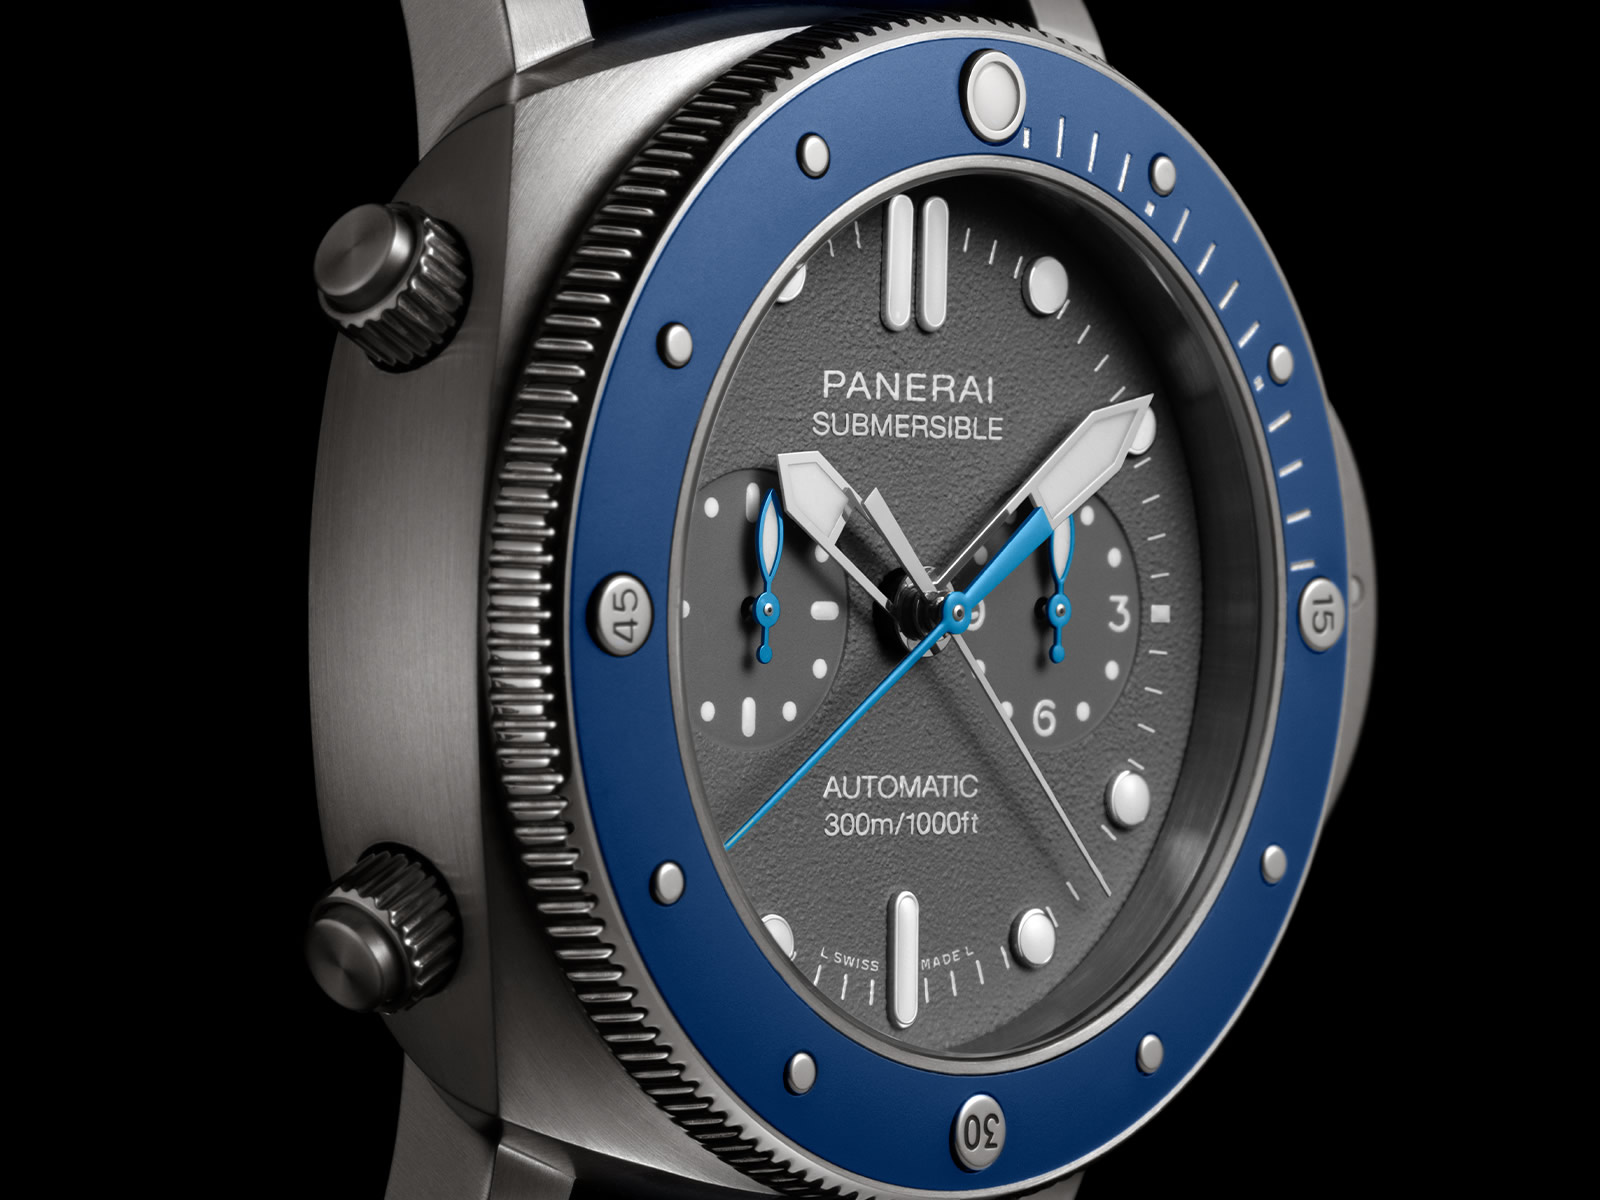 pam00982-officine-panerai-submersible-chrono-guillaume-nery-edition-5-.jpg